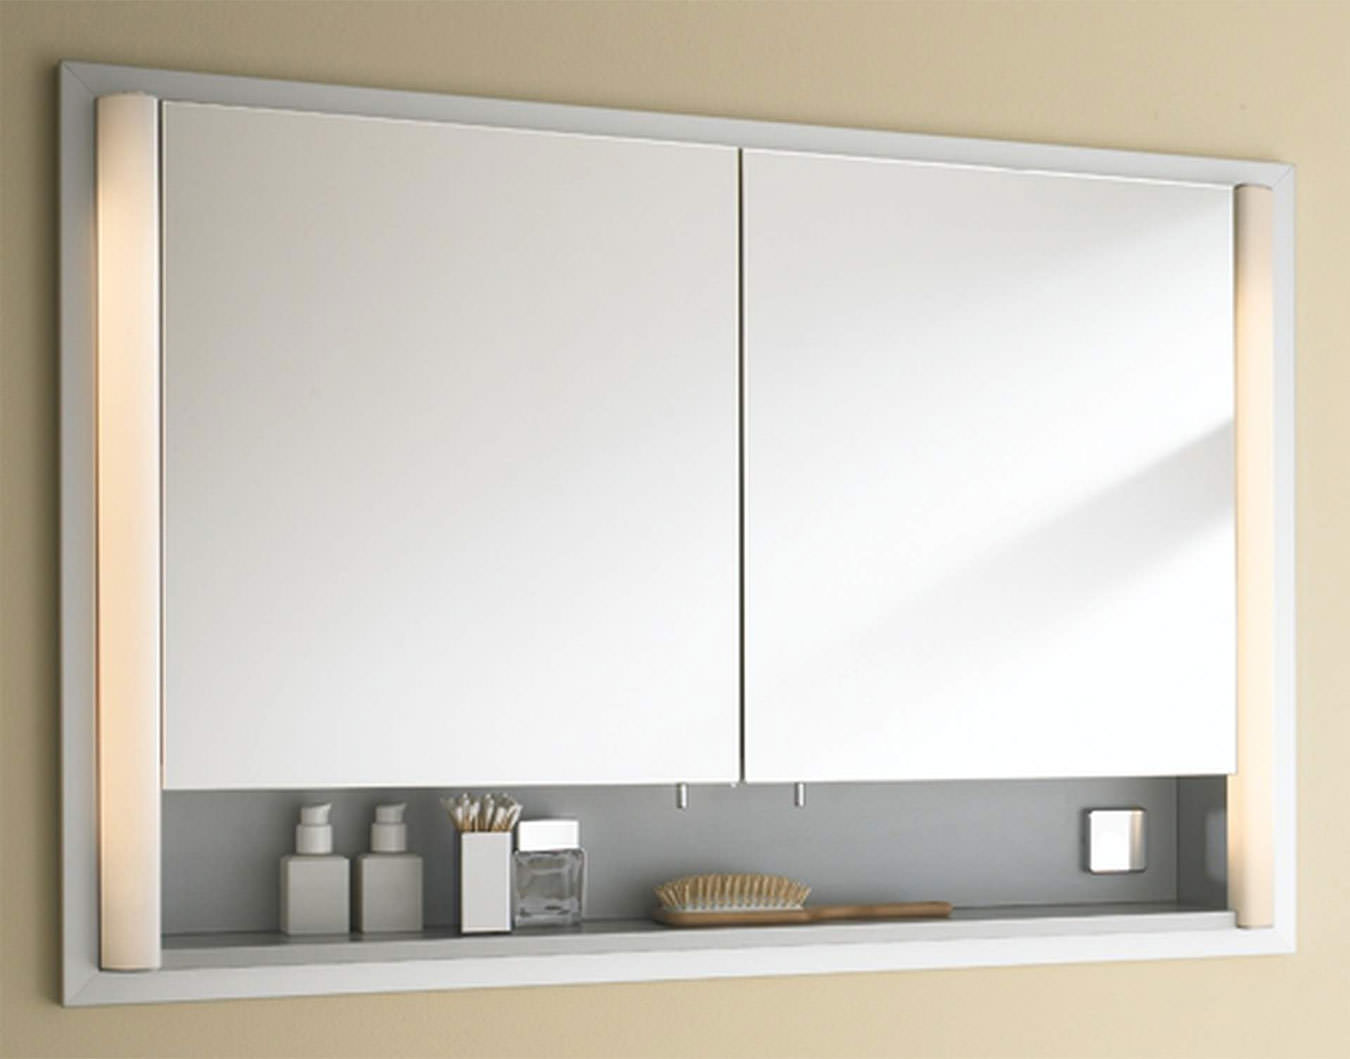 Duravit 800mm 2 Door Built In Mirror Cabinet With Open